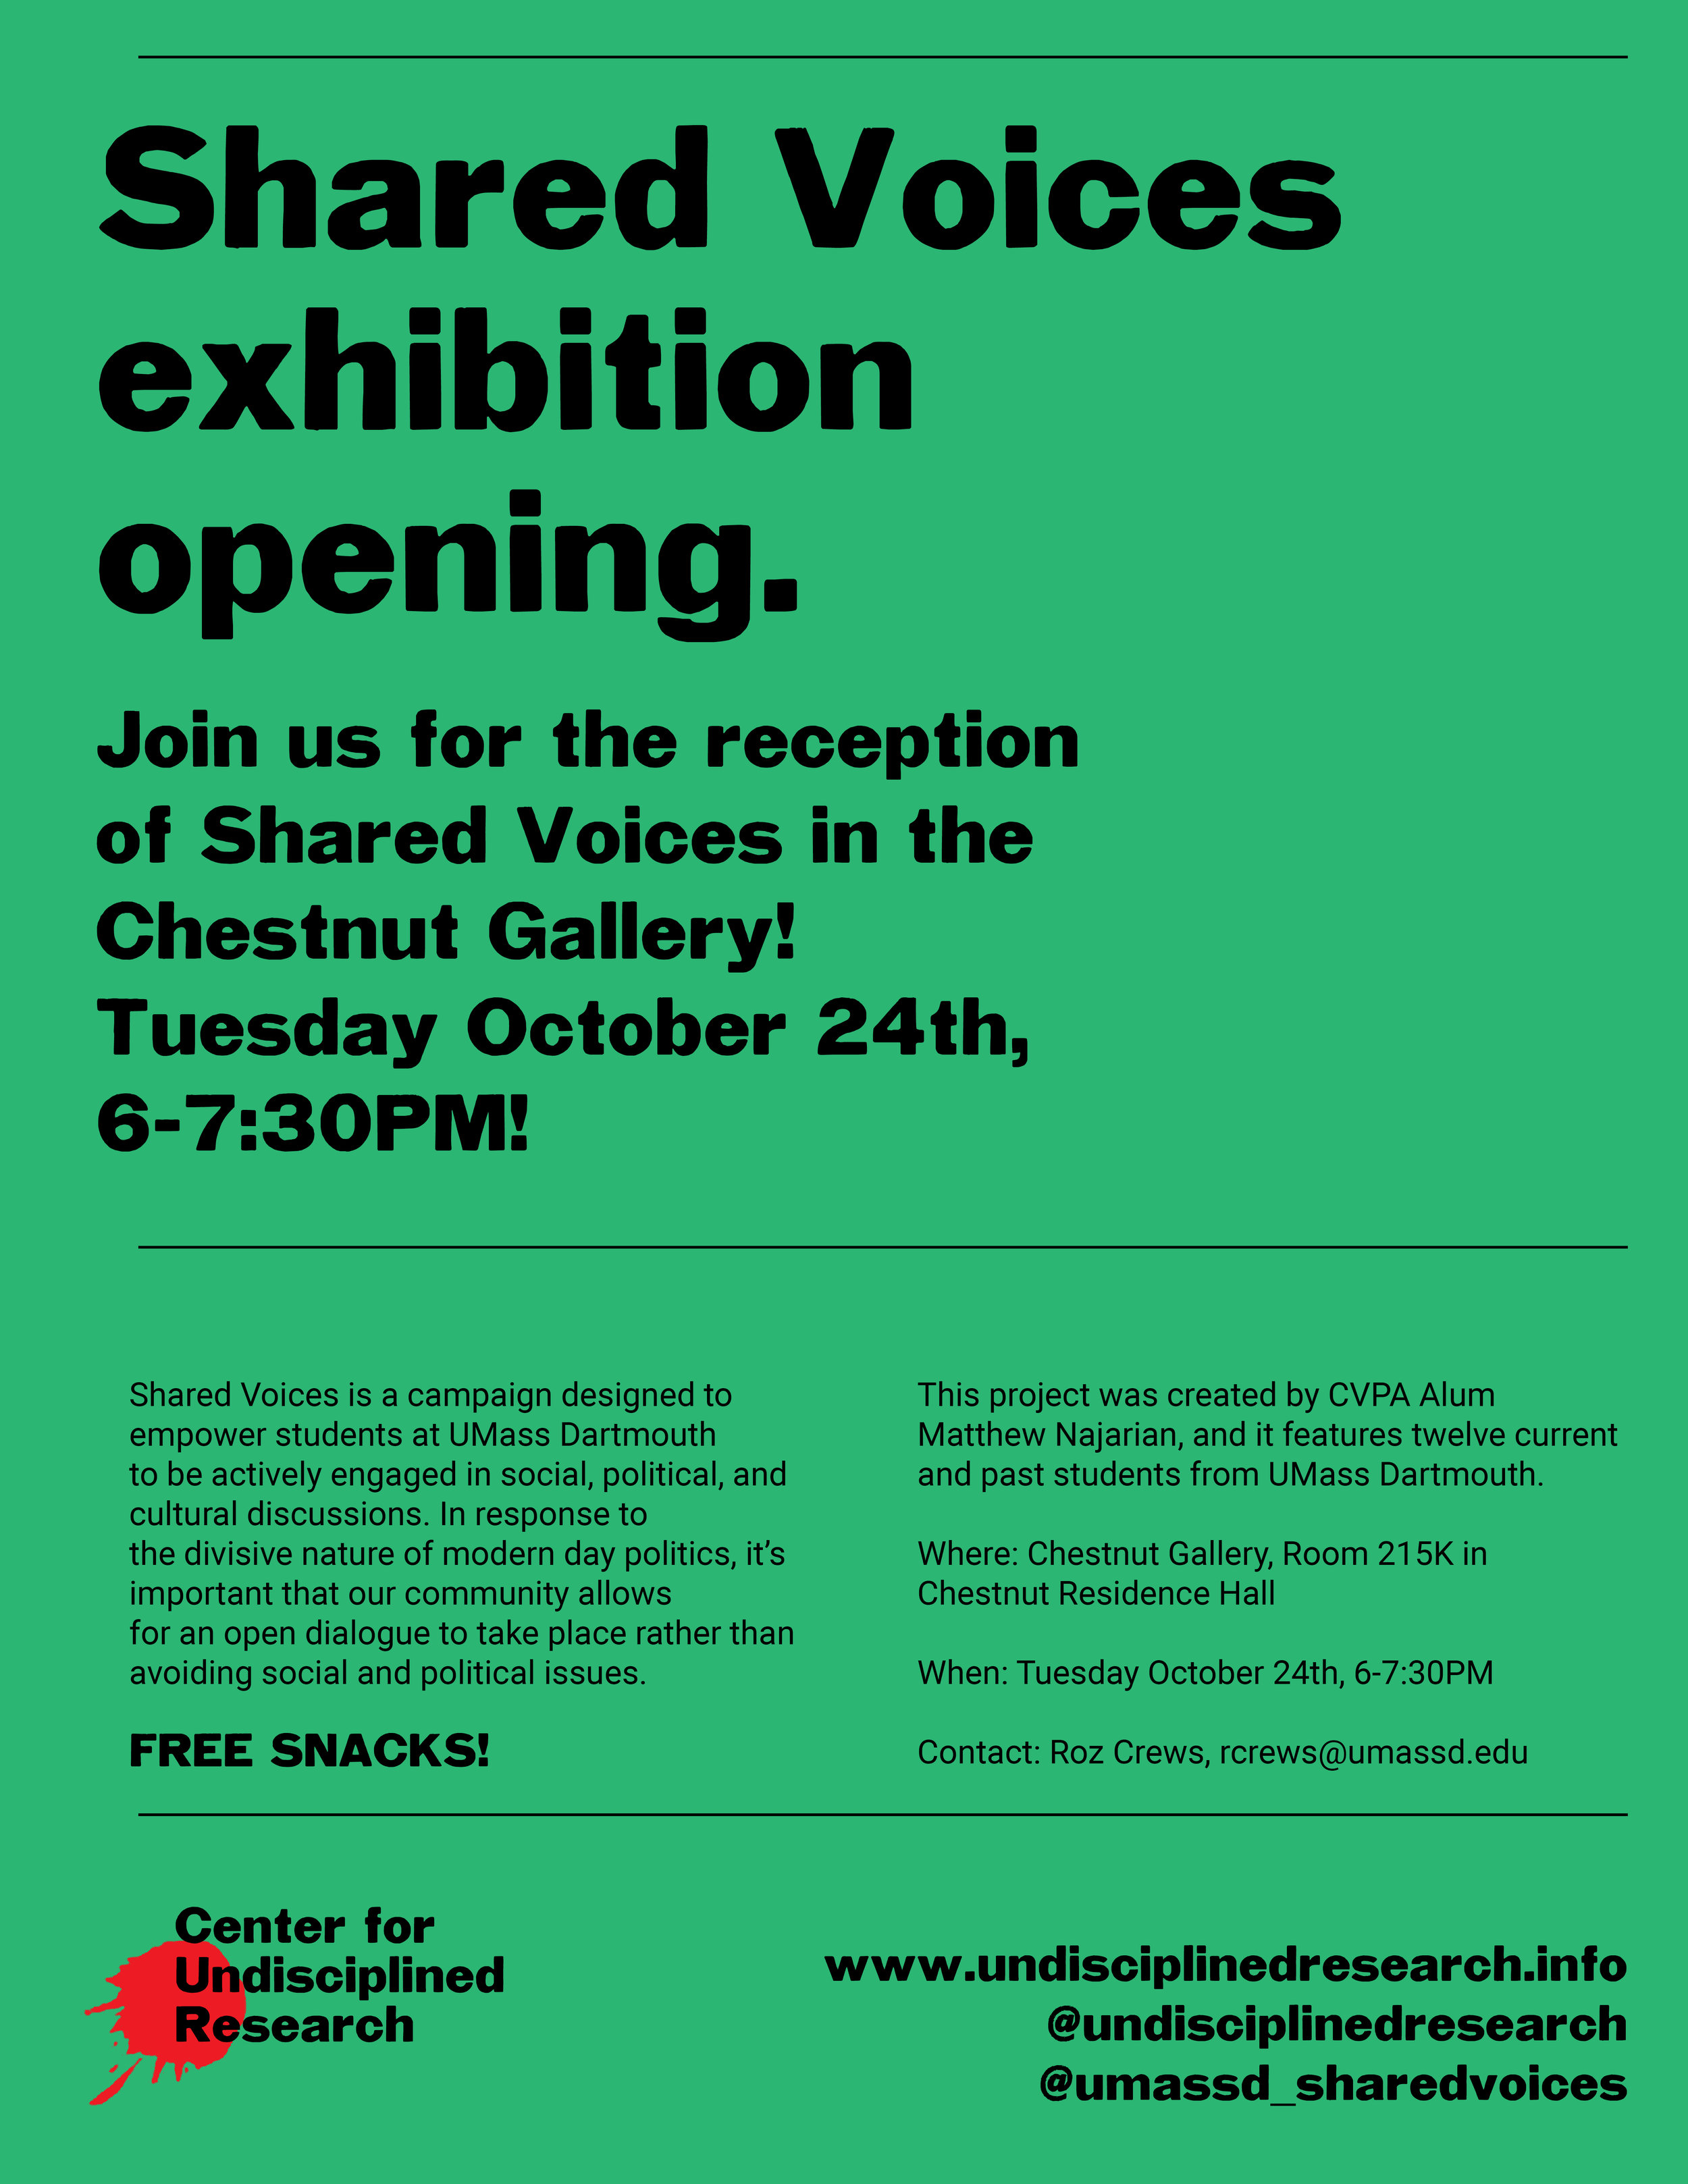 Please join us for the opening reception of the Shared Voices exhibition!